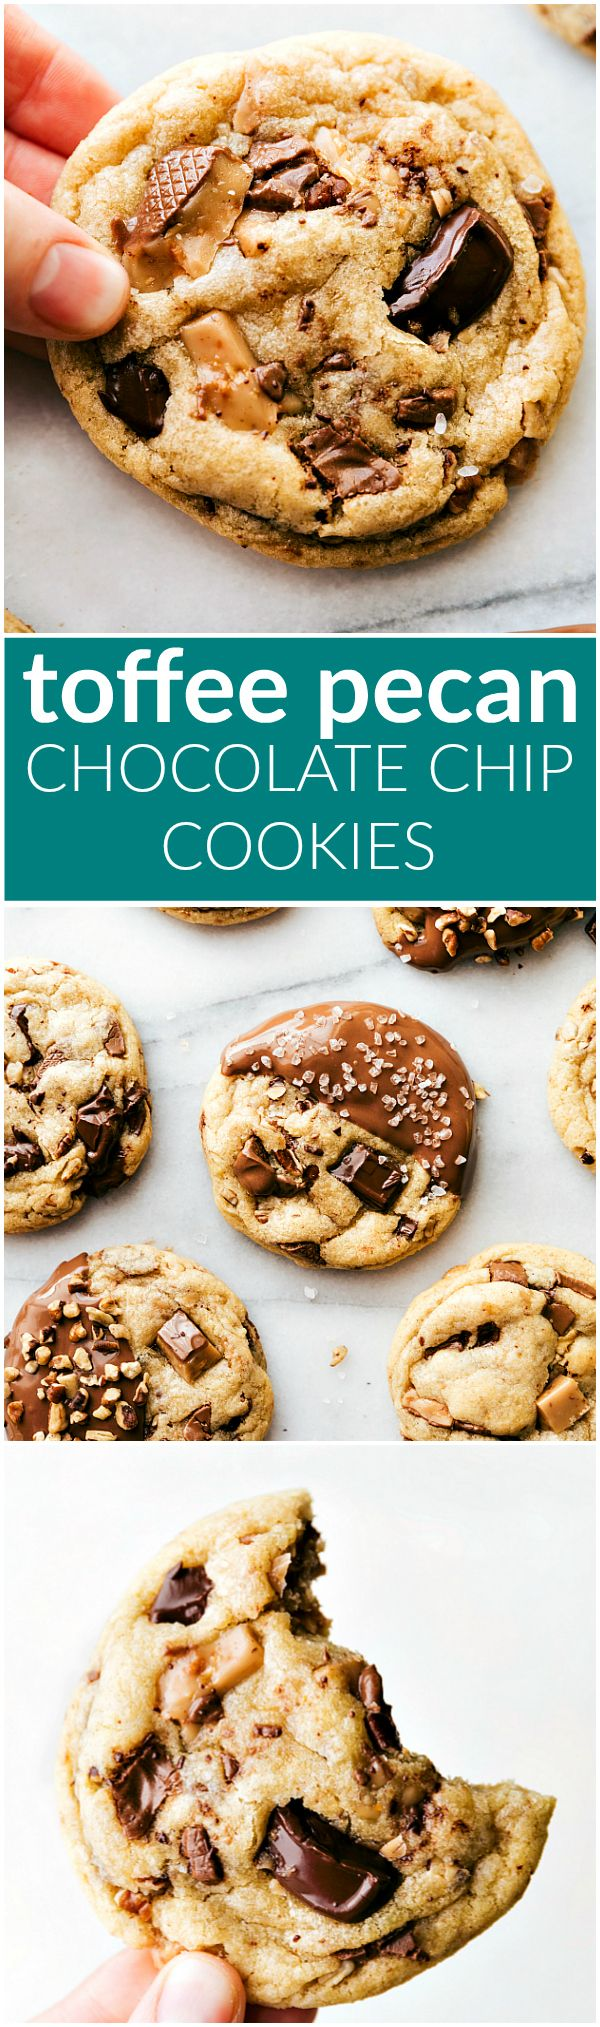 Delicious toffee and pecan stuffed chocolate-chip cookies dipped in melted milk chocolate. These toffee pecan cookies are soft & chewy with crisp edges! I chelseasmessyapron.com